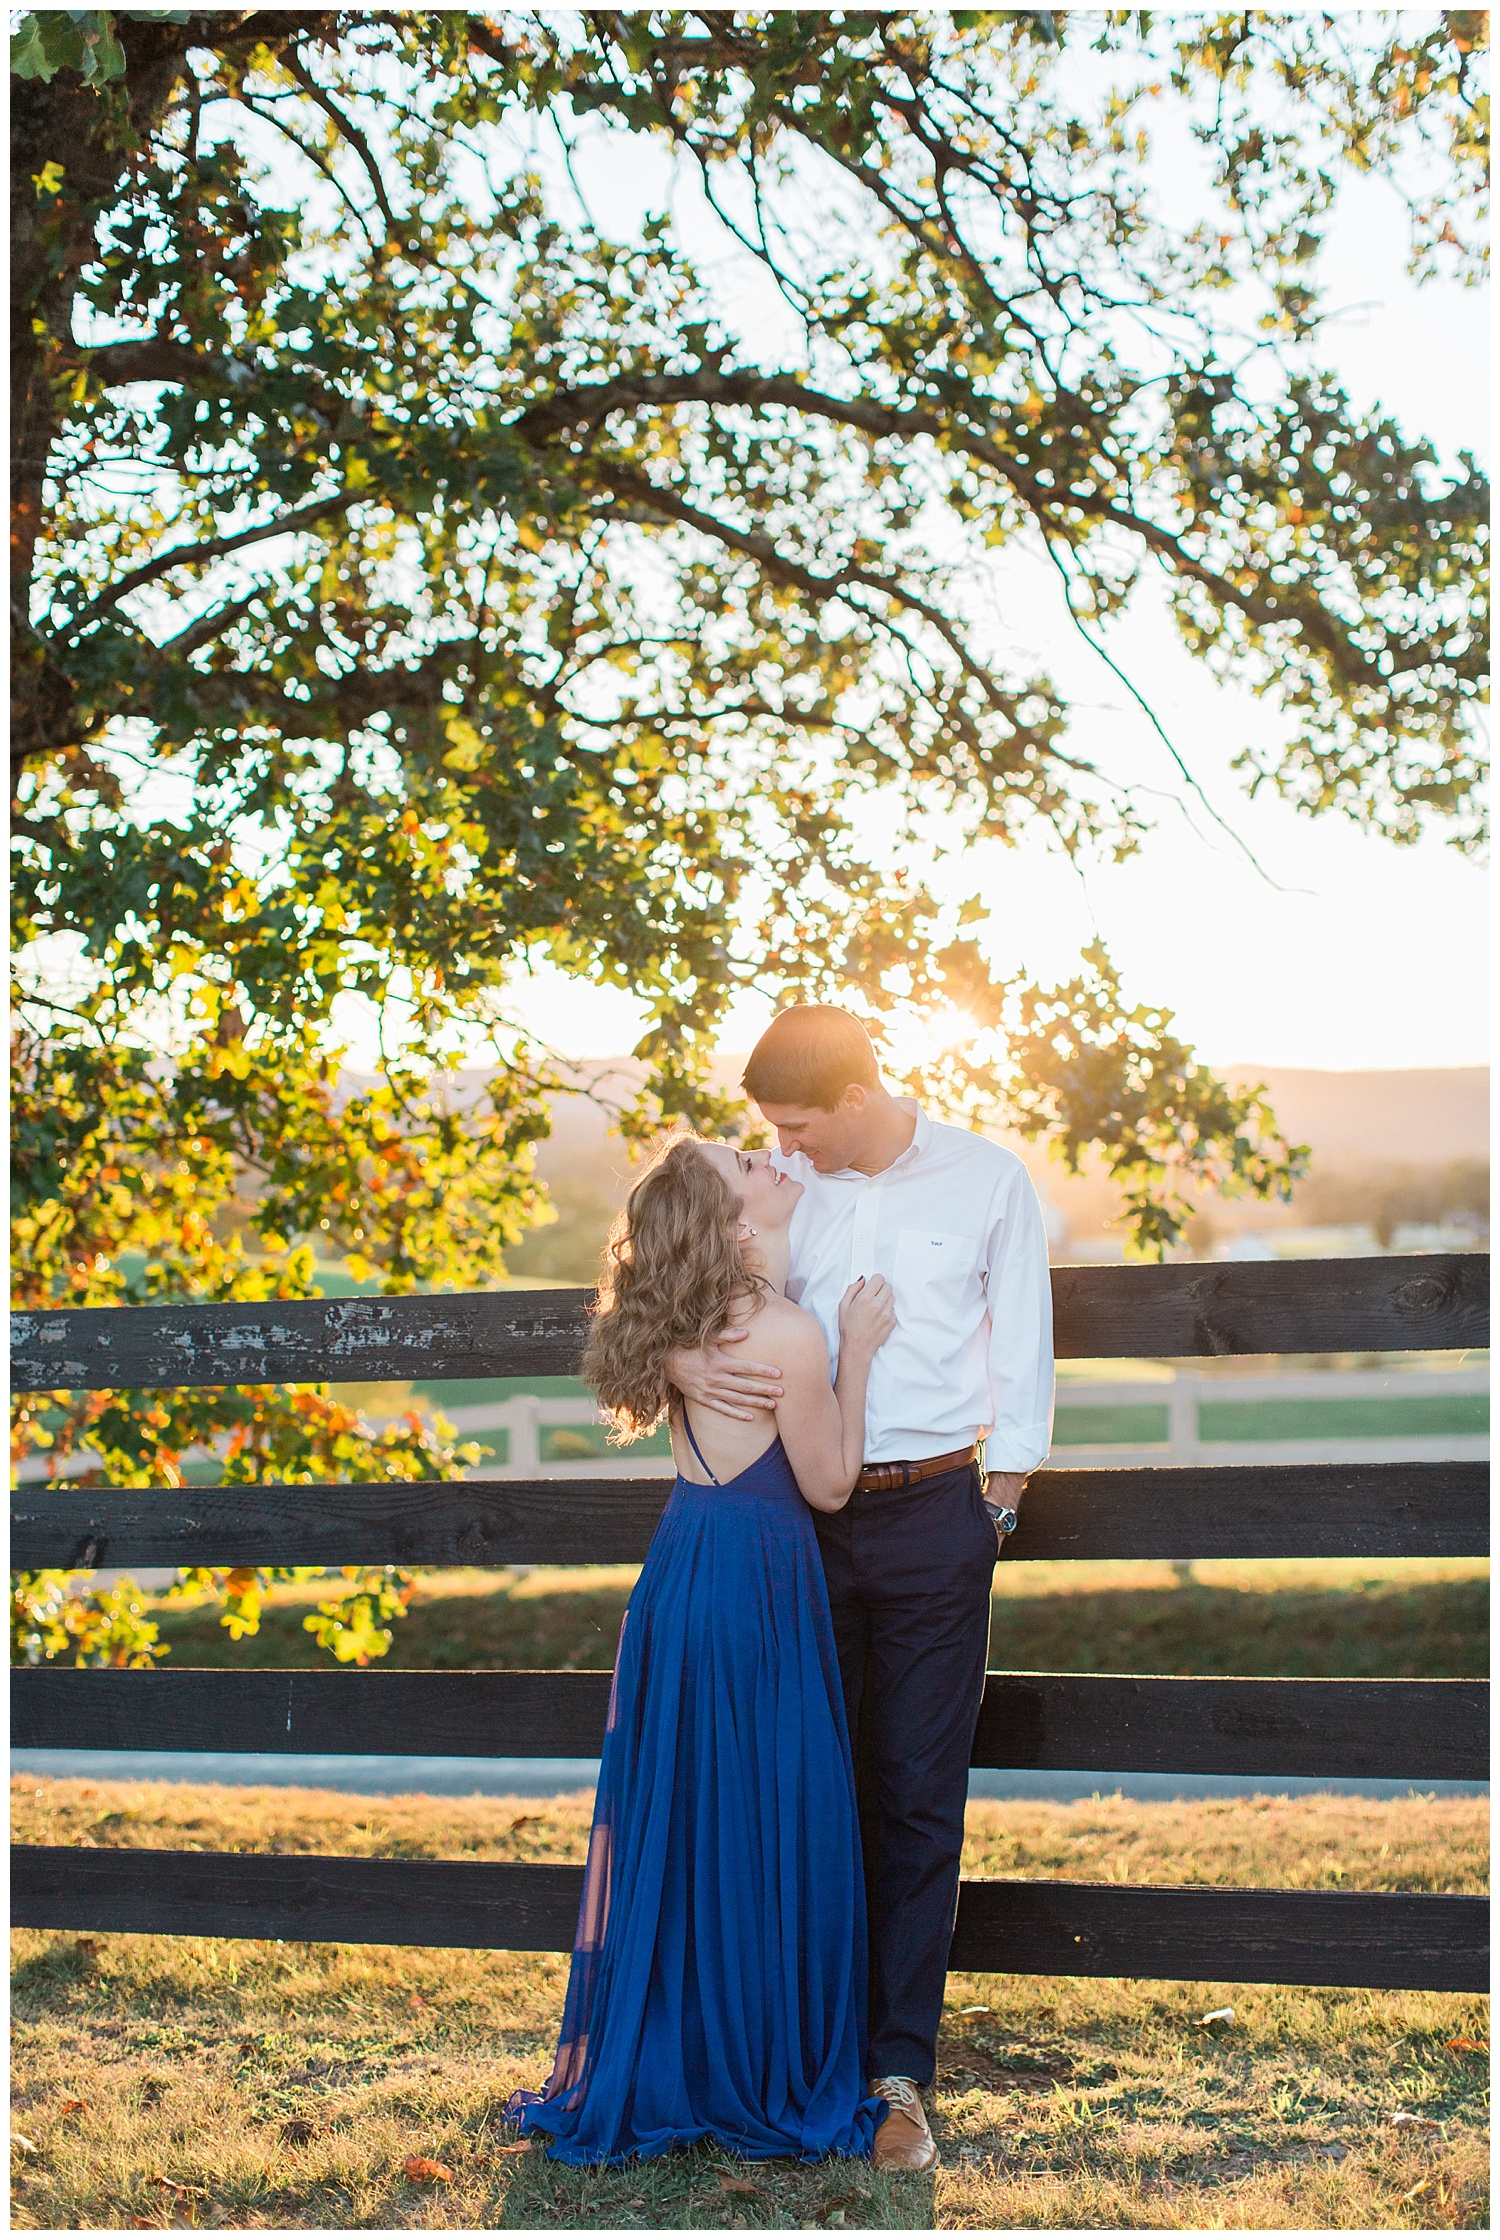 charlottesville_wedding_photographer_chiles_peach_orchard27.jpg